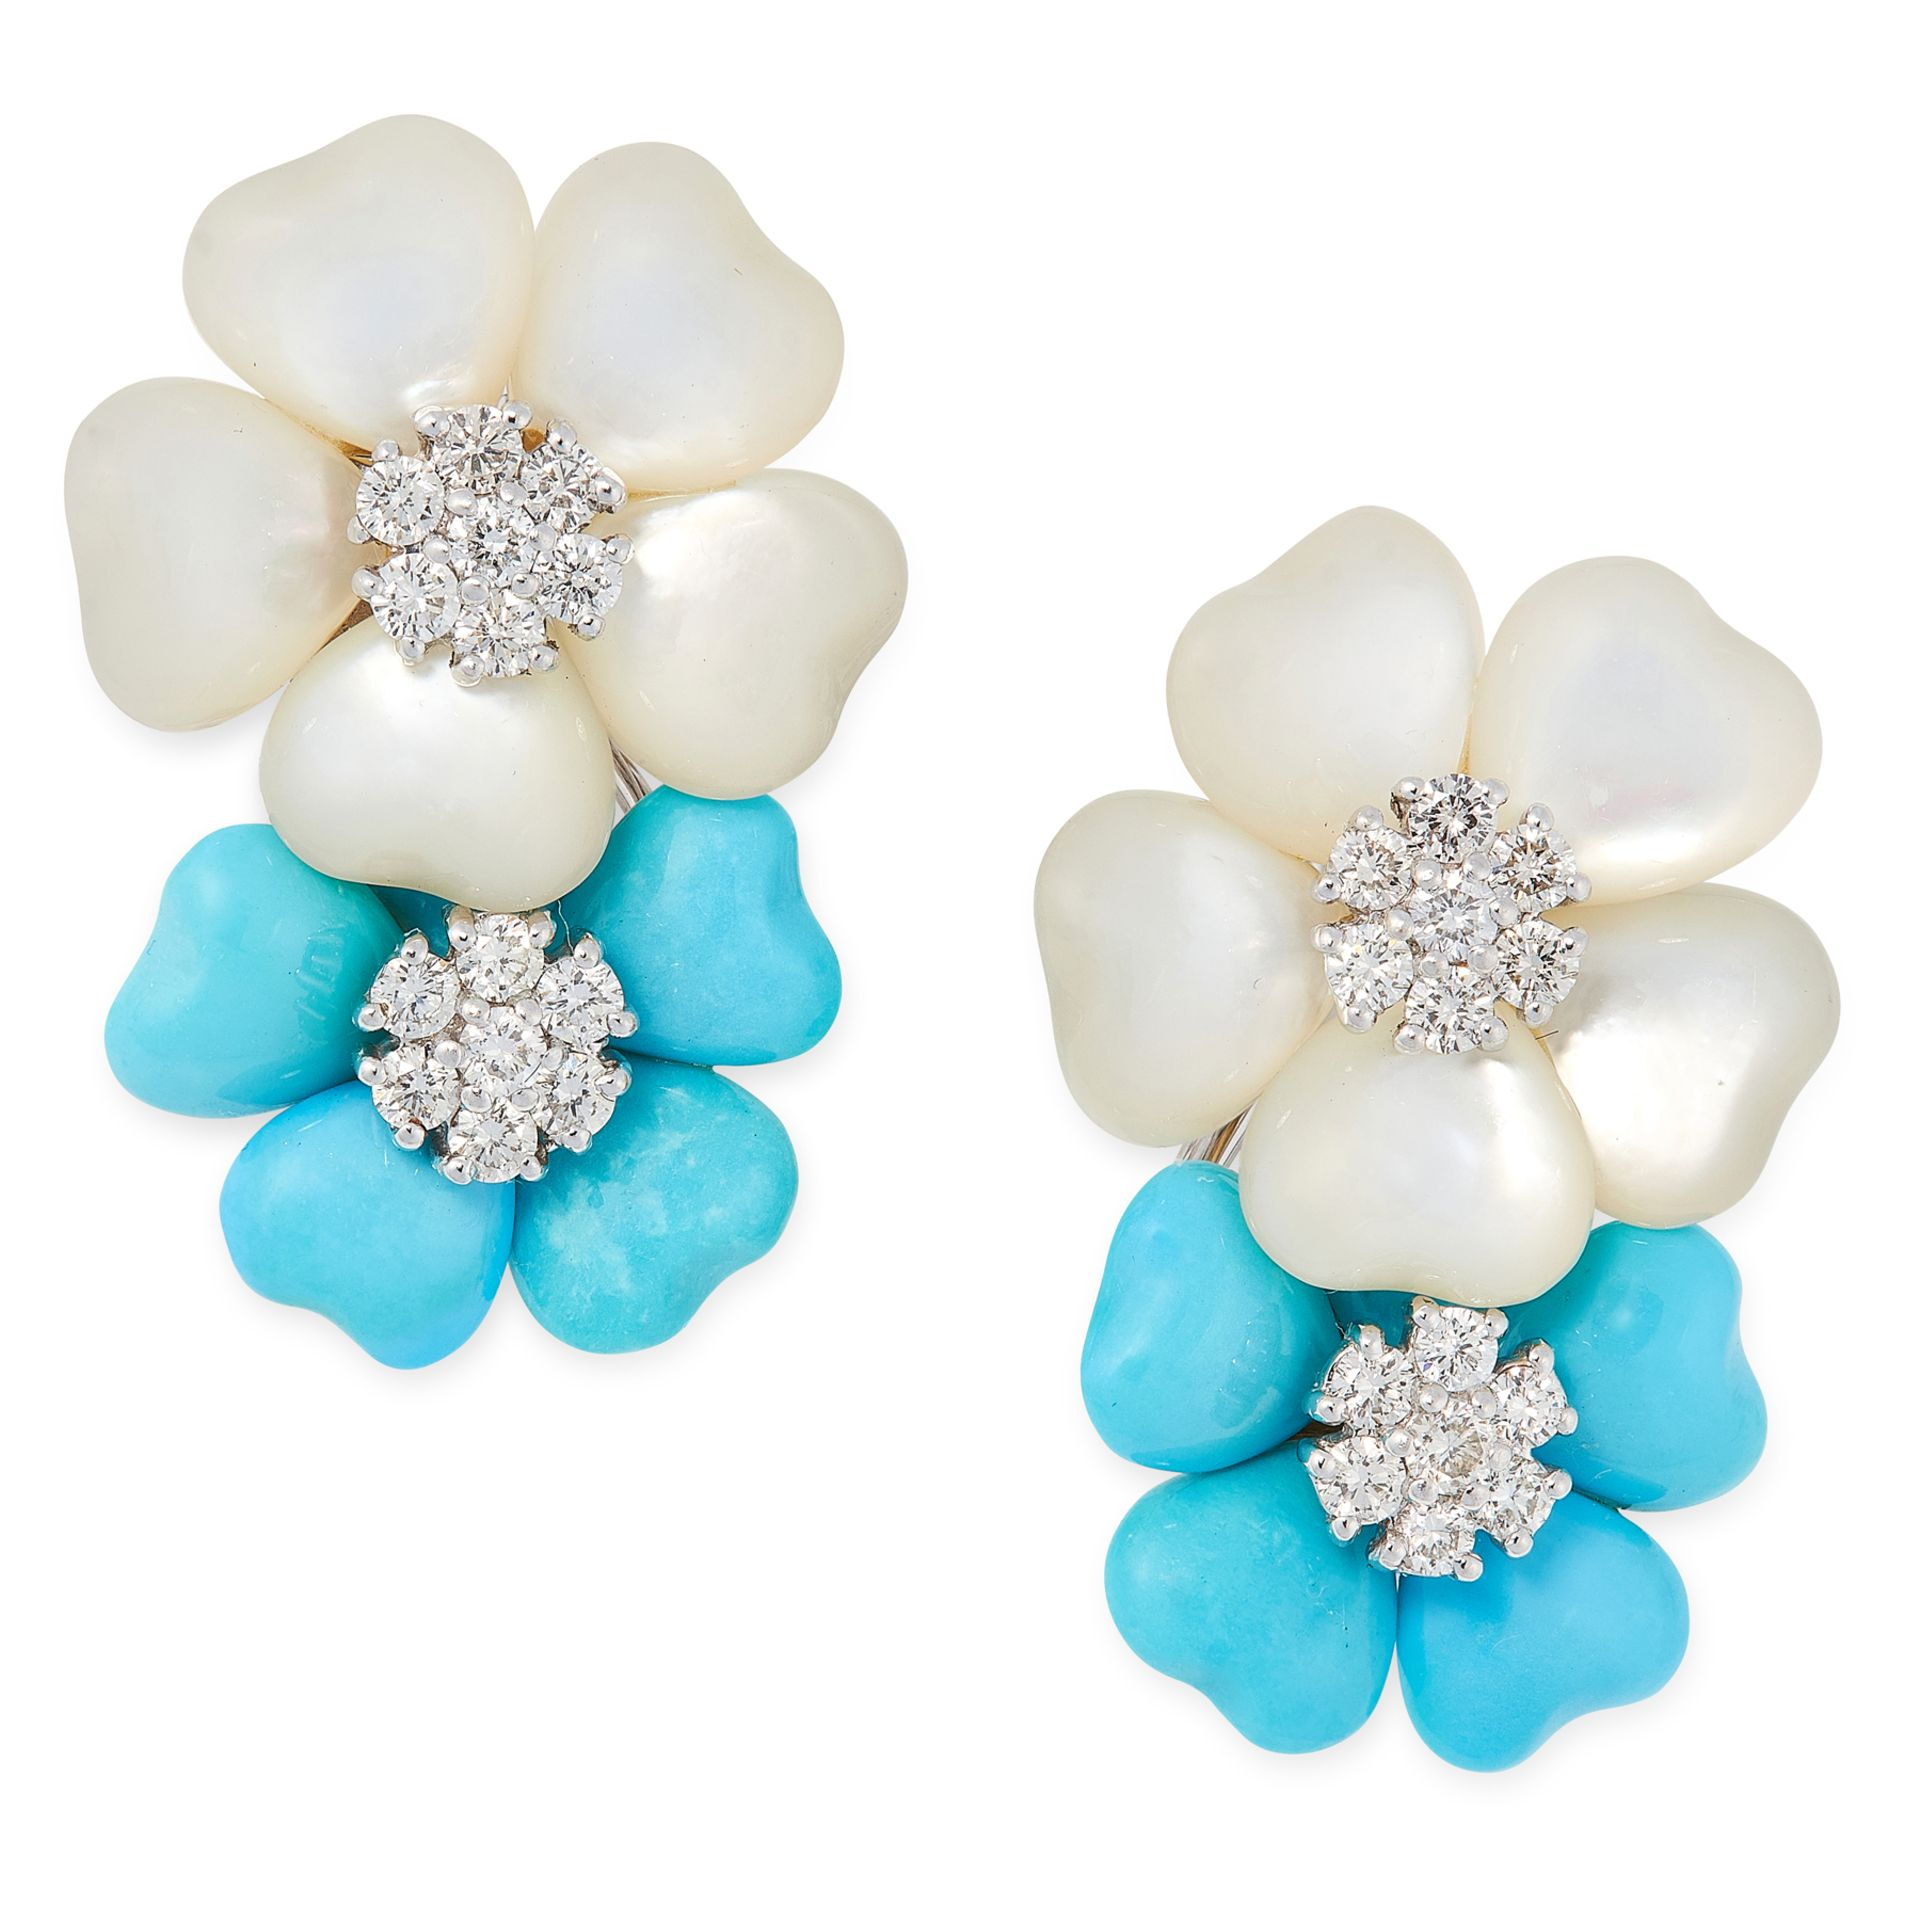 A PAIR OF TURQUOISE, MOTHER OF PEARL AND DIAMOND EARRINGS in 18ct white gold, each designed as two